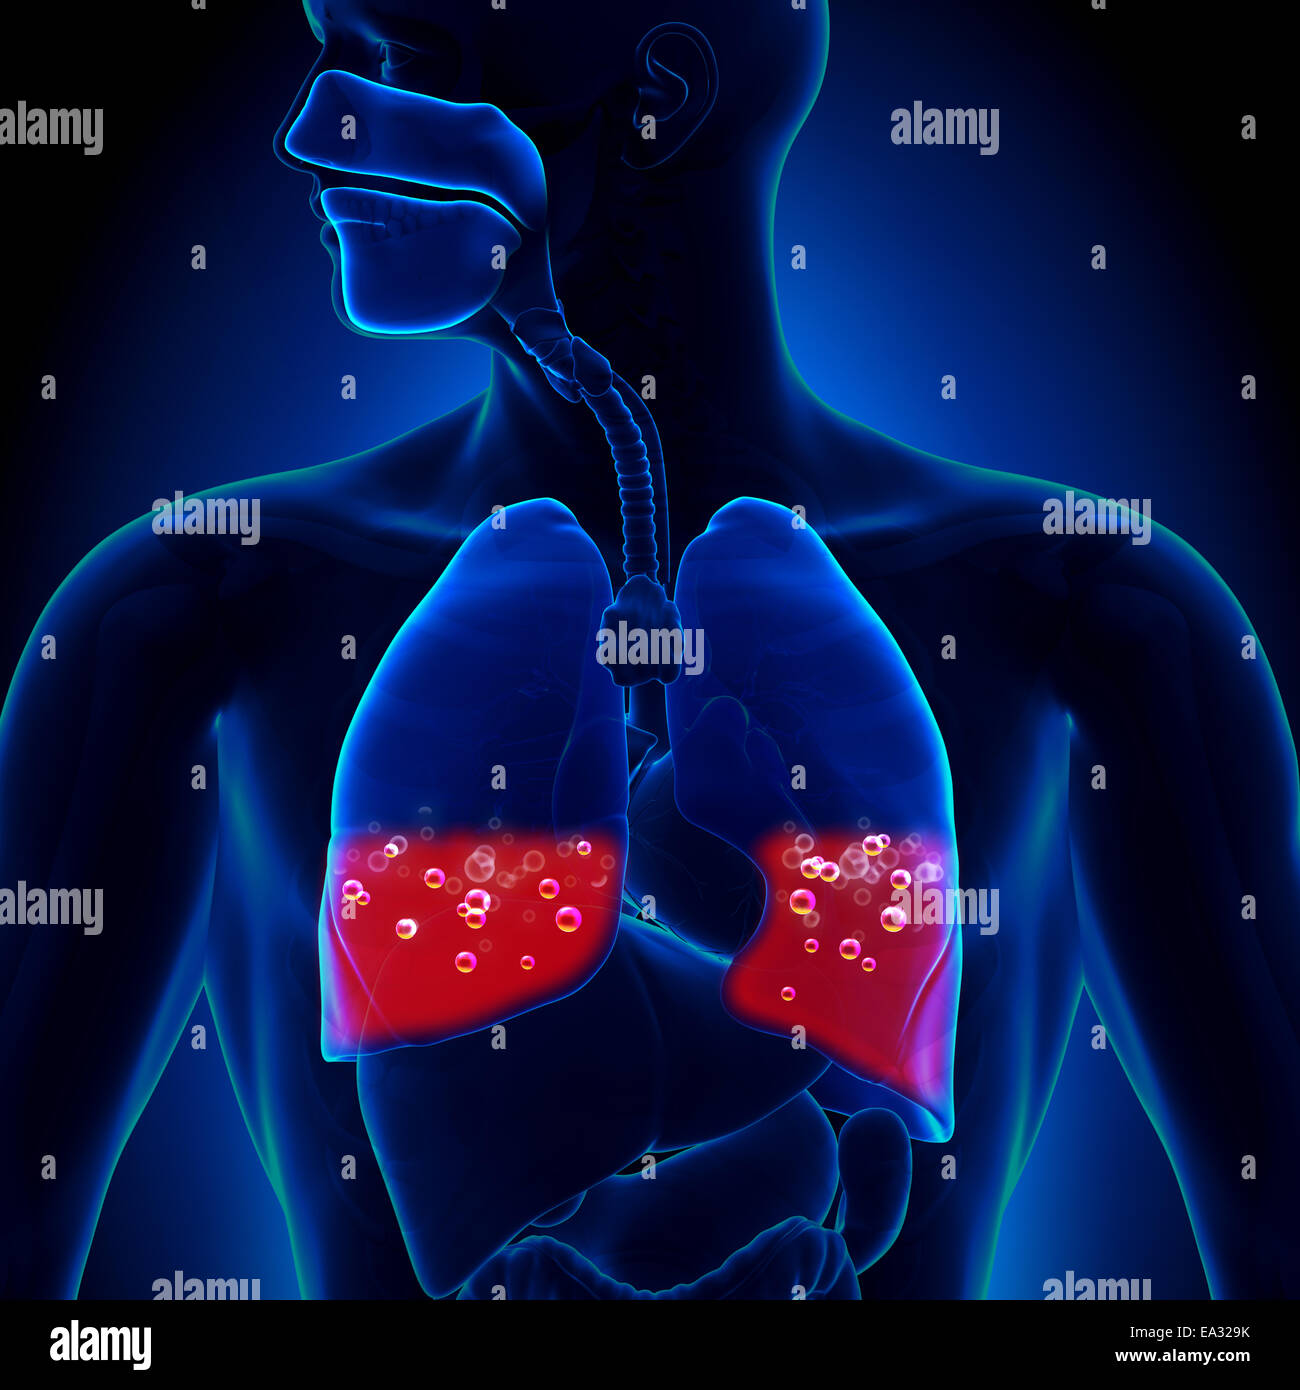 Pulmonary Edema - Blood in Lungs - Stock Image